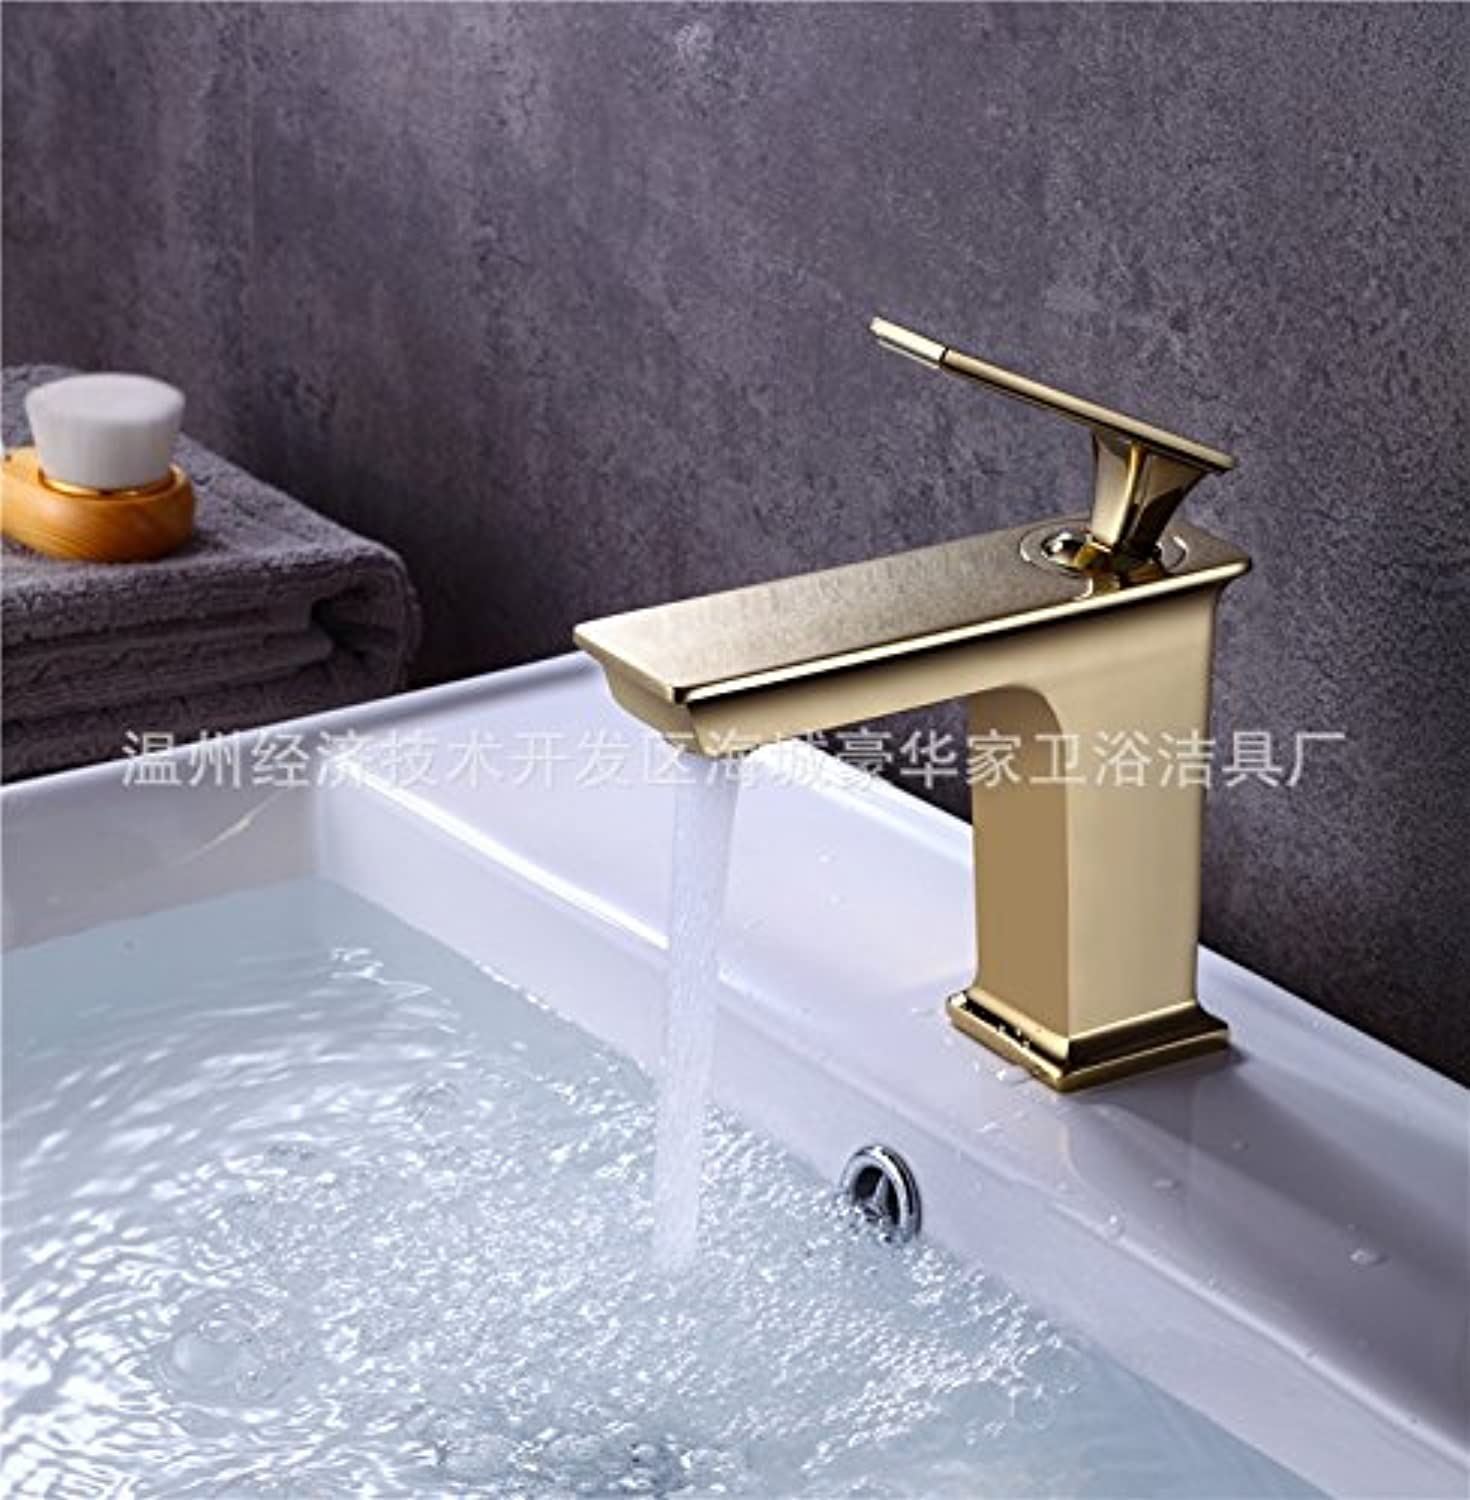 Lalaky Taps Faucet Kitchen Mixer Sink Waterfall Bathroom Mixer Basin Mixer Tap for Kitchen Bathroom and Washroom Hot and Cold gold